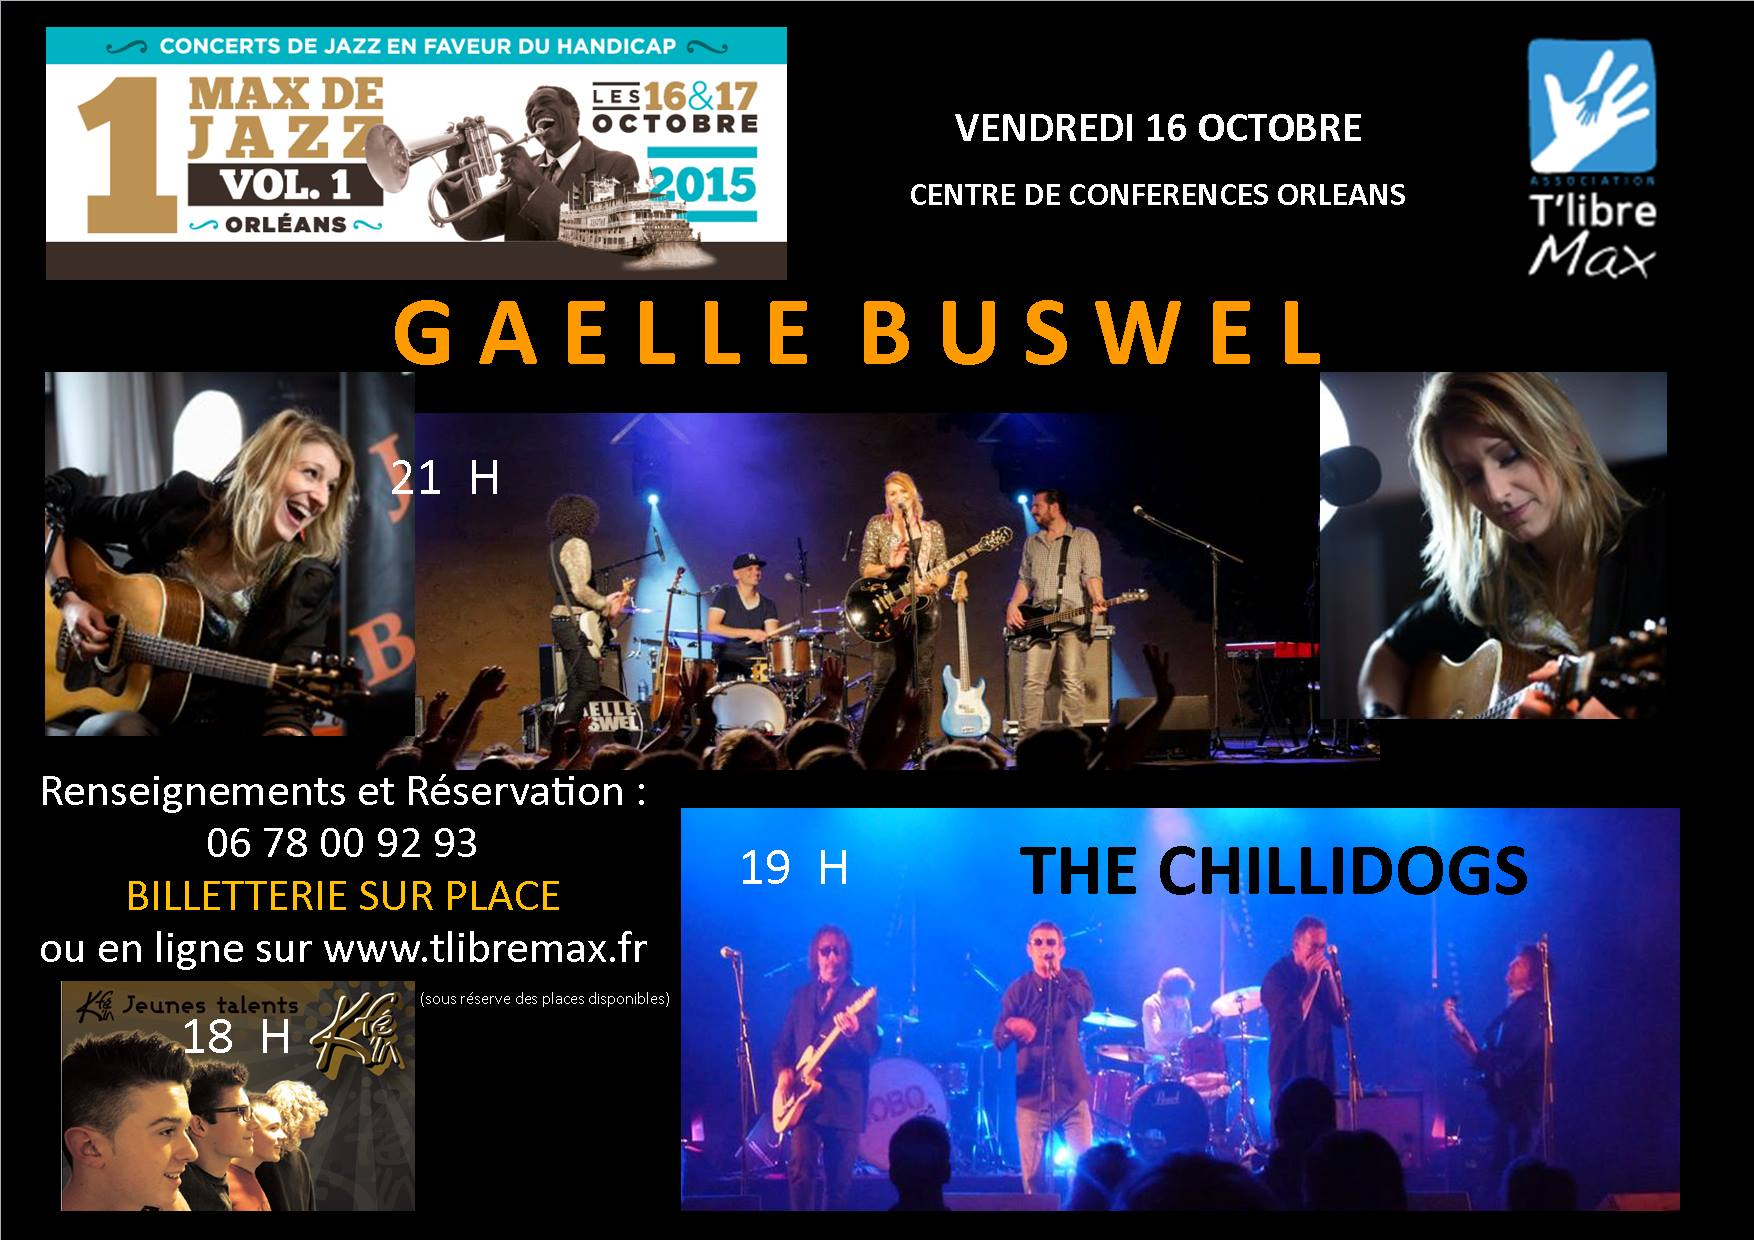 "16 octobre 2015 Kfe'in, Chillidogs, Gaelle Buswel à Orléans ""Centre de Conference"""